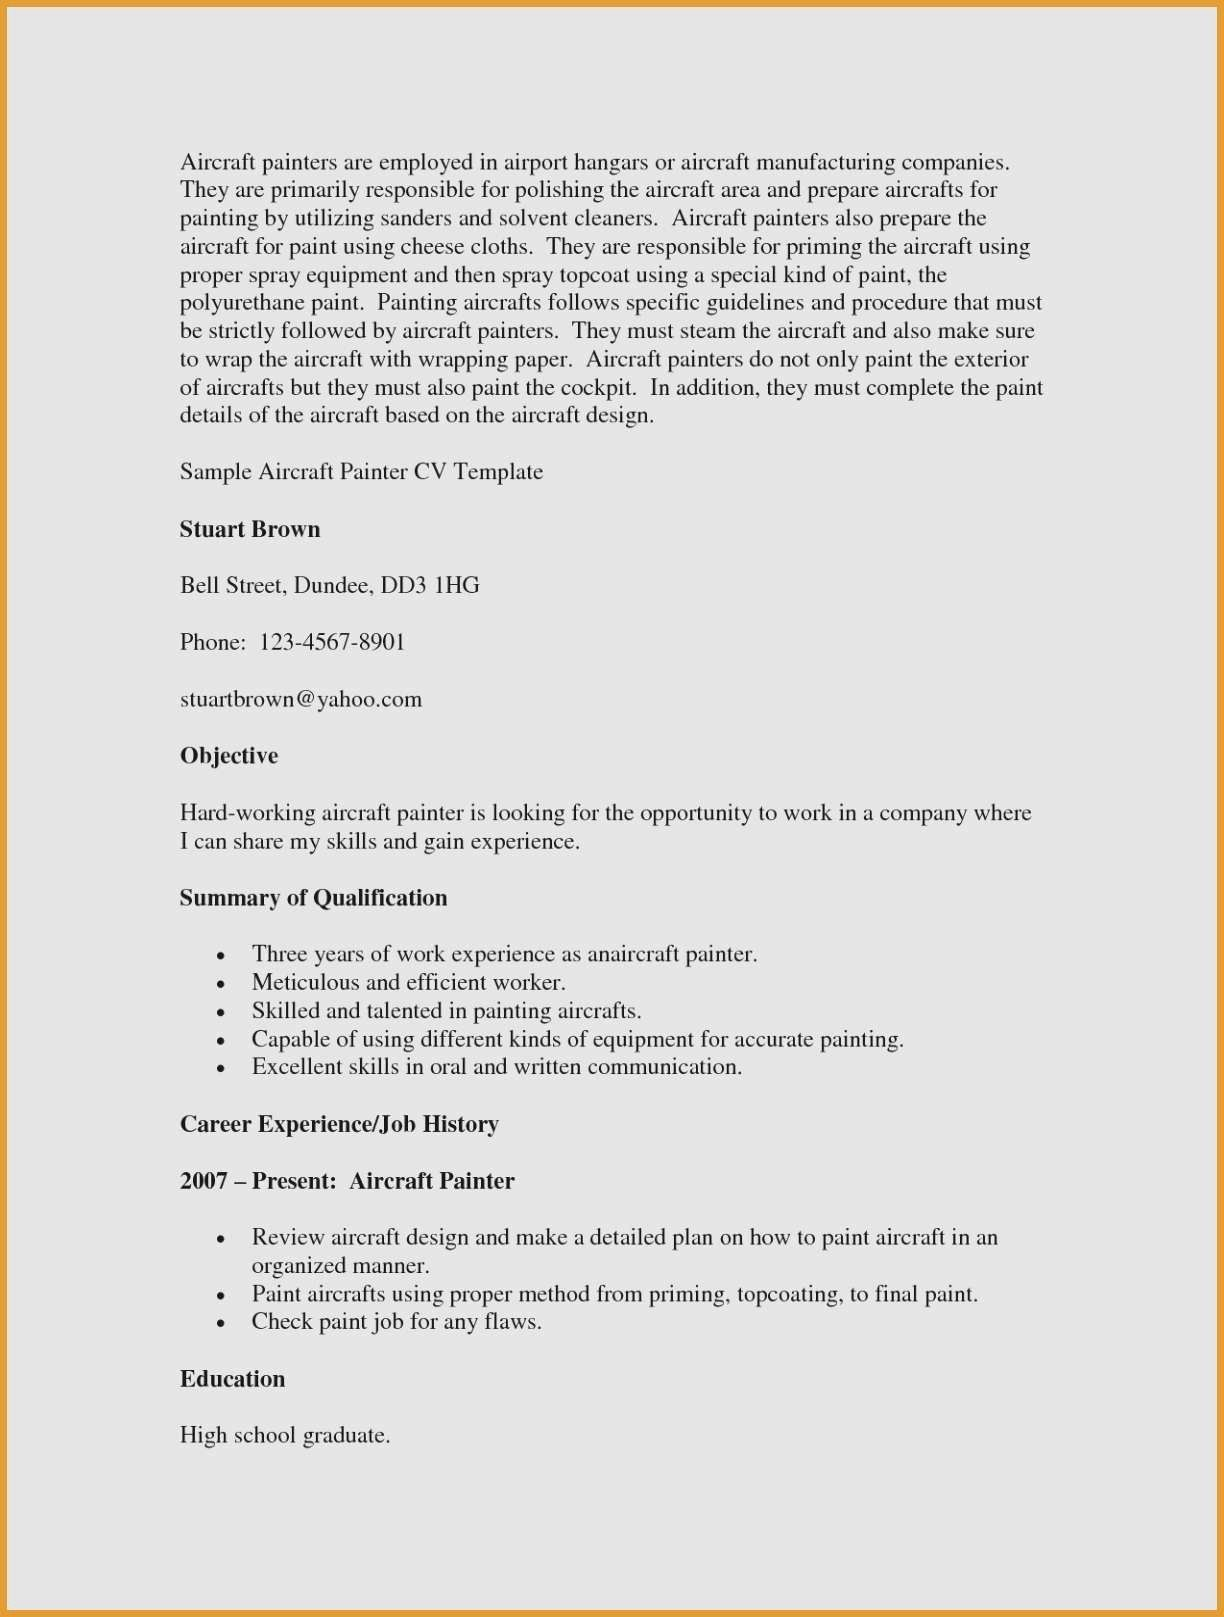 32 Inspirational Law School Resume Template in 2020